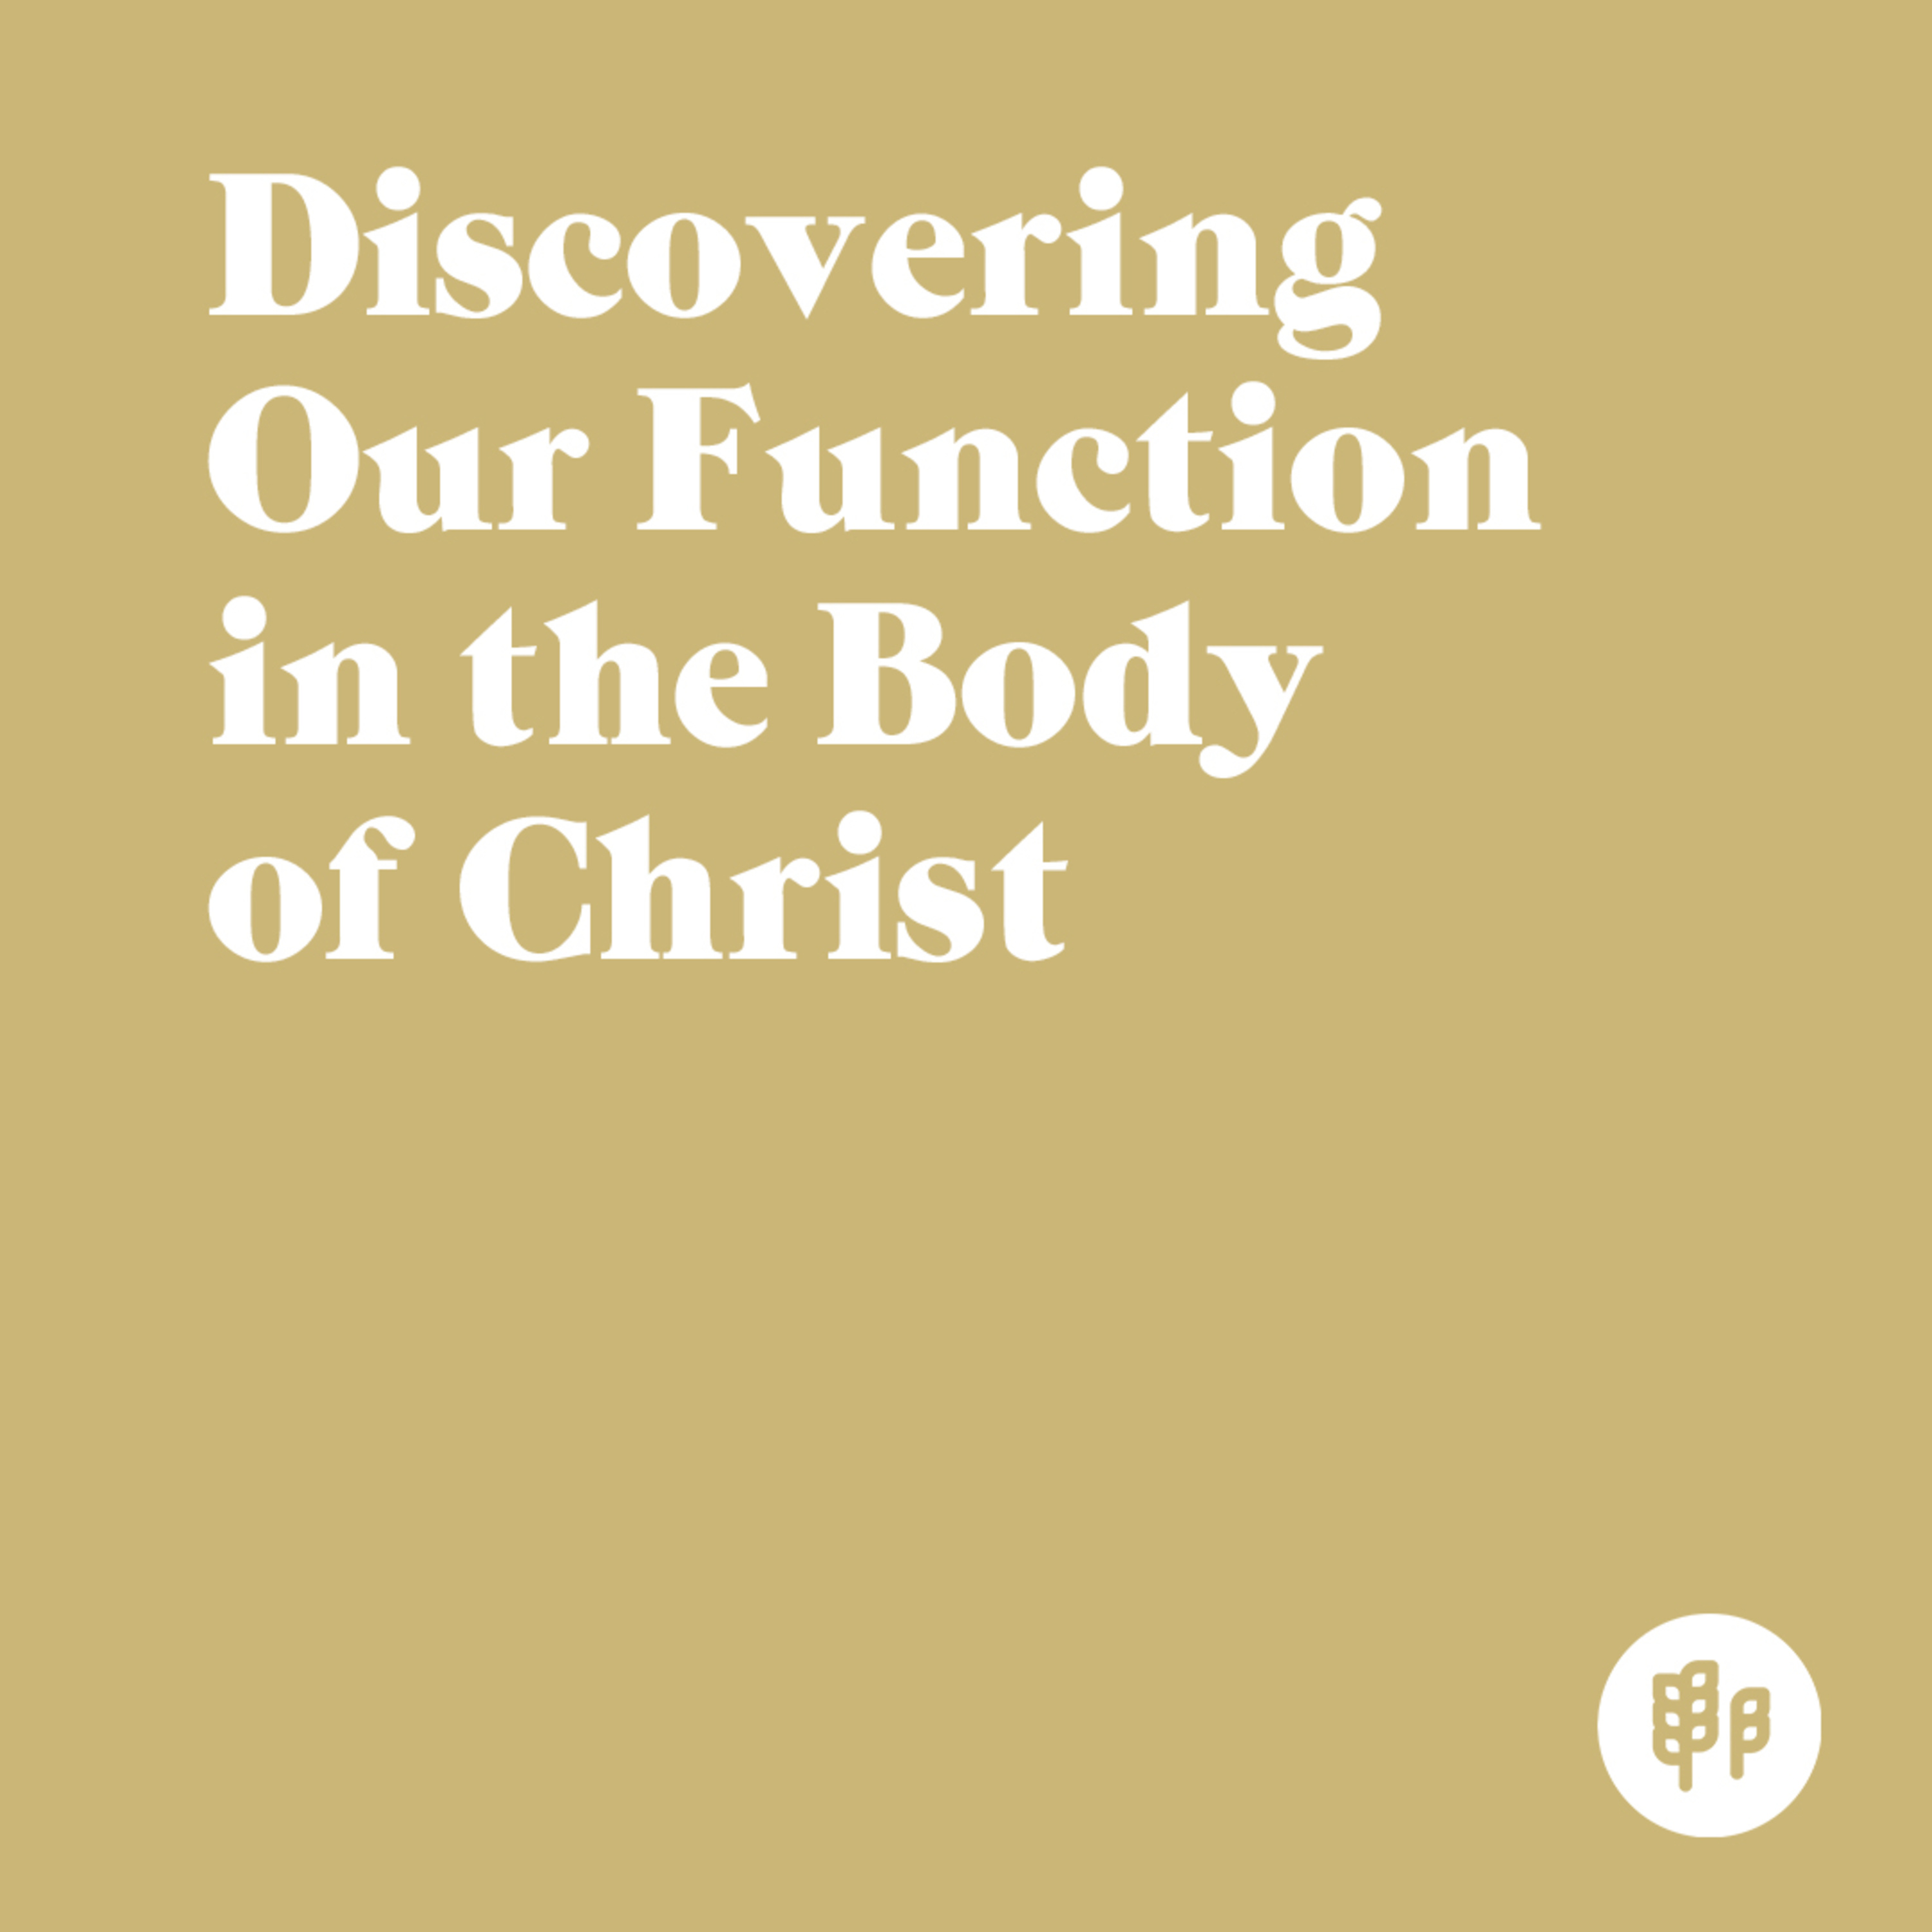 Discovering Our Function in the Body of Christ (M.R.)